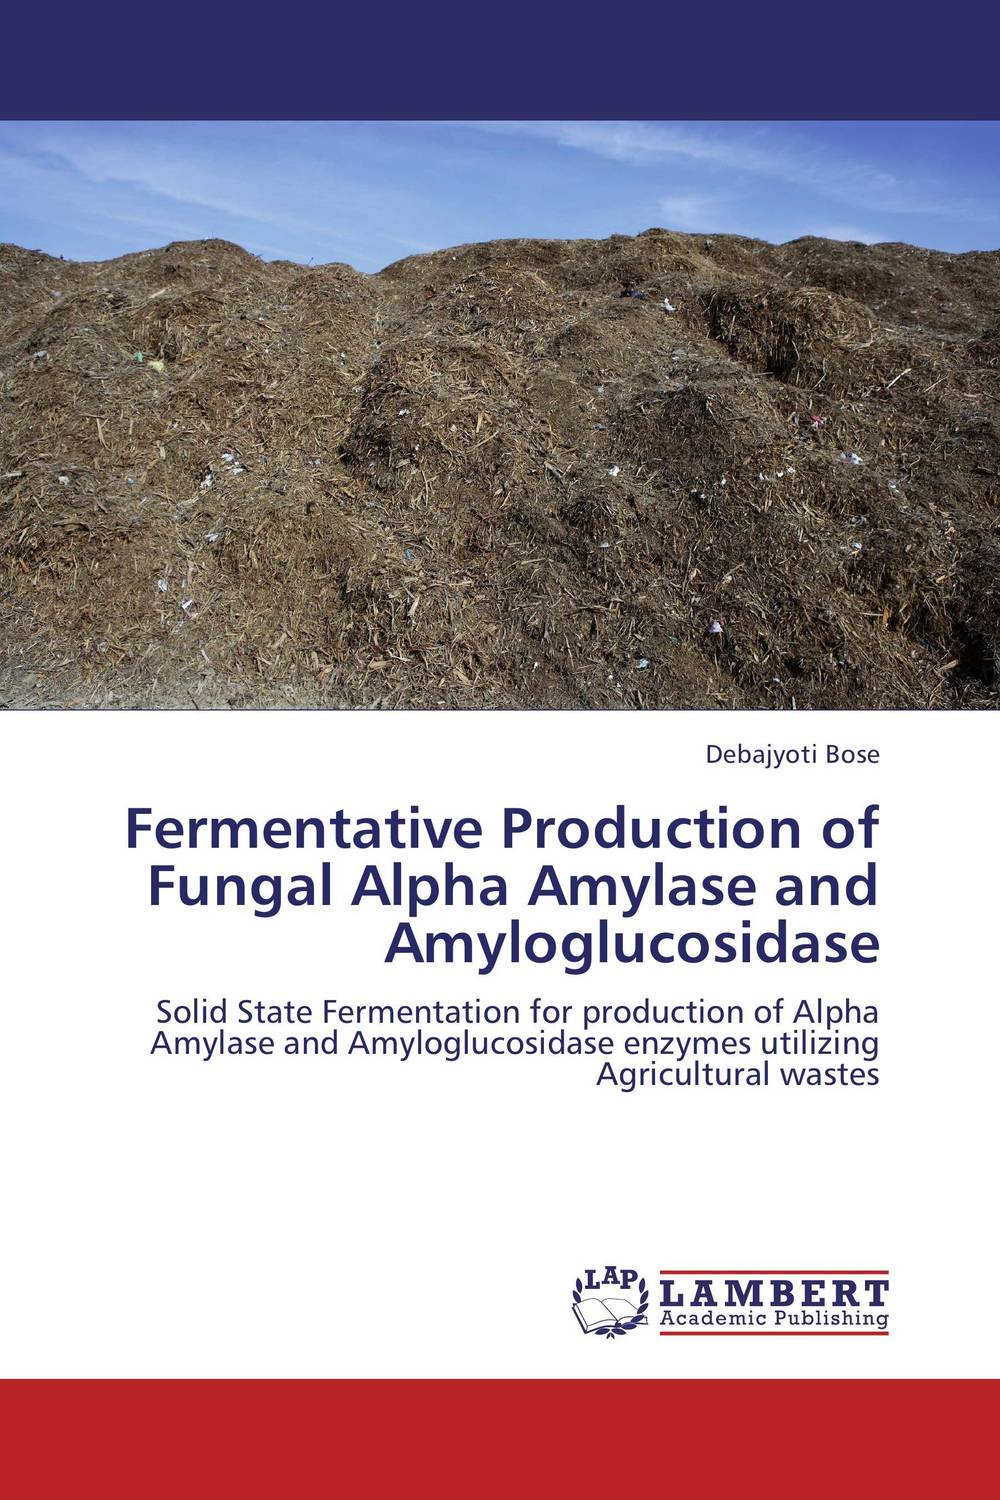 Fermentative Production of Fungal Alpha Amylase and Amyloglucosidase maushmi kumar and vikas verma lipstatin fermentative production